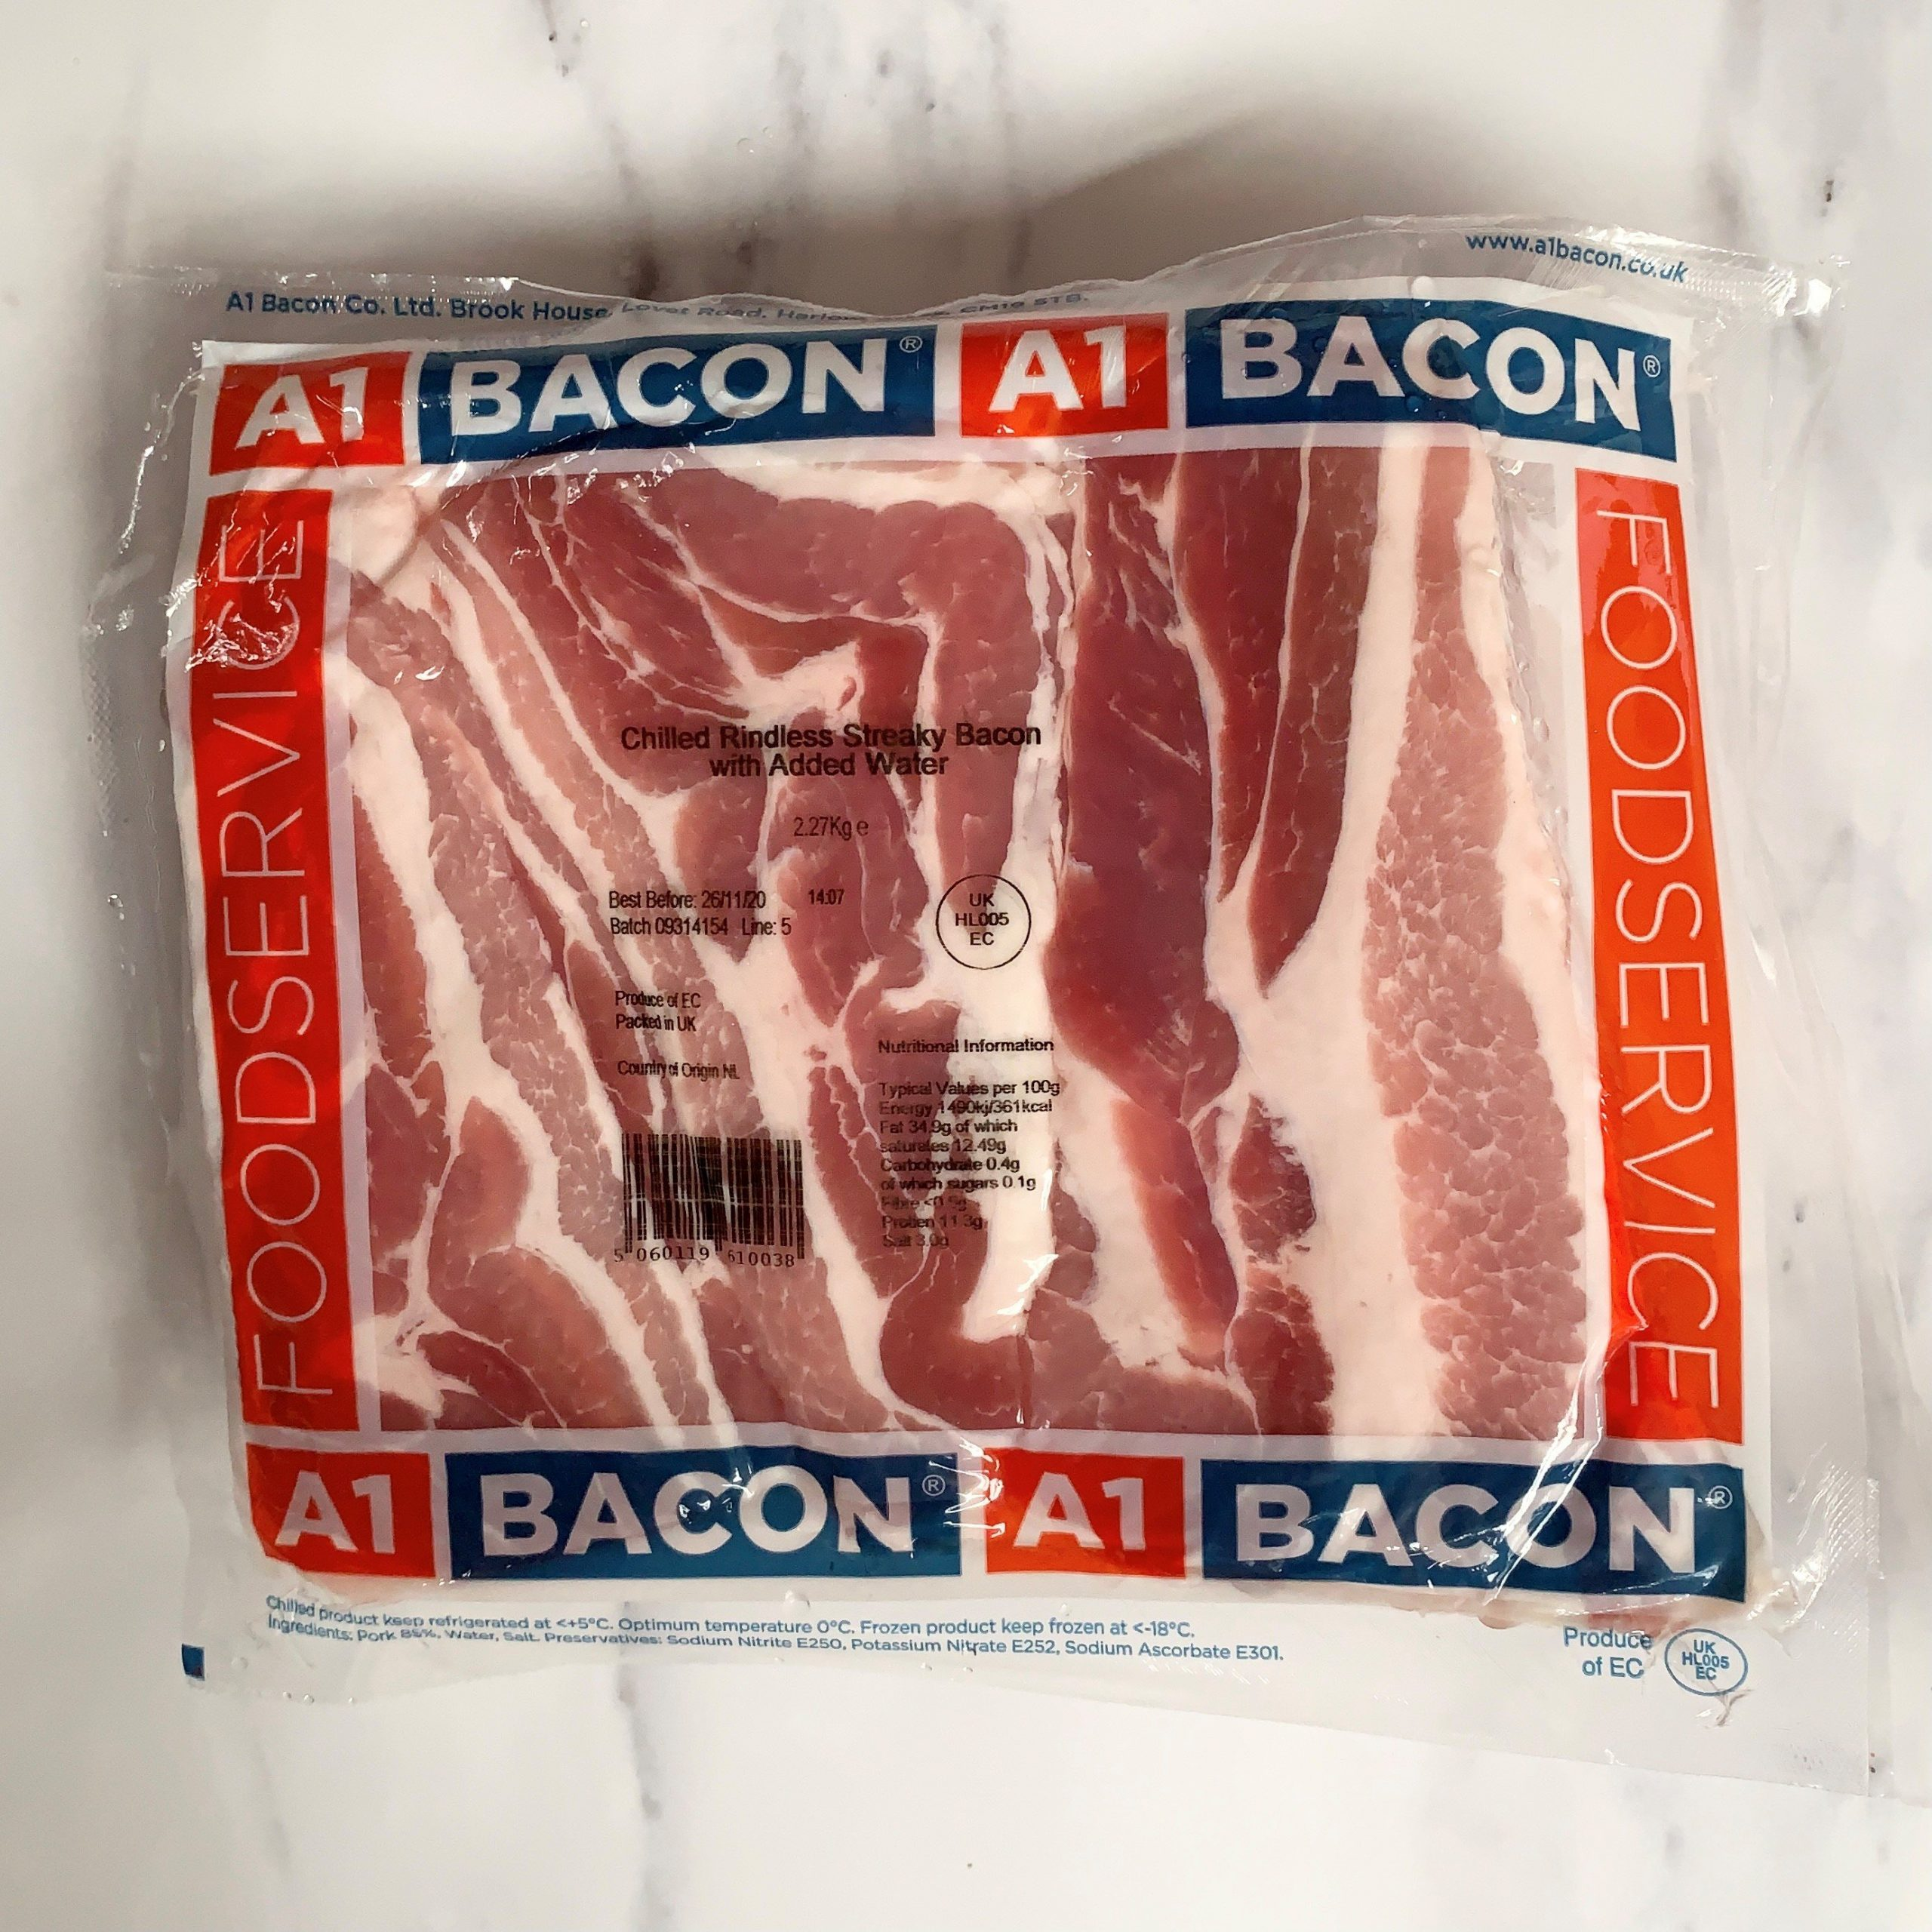 A1 Unsmoked Streaky Bacon – 2.27kg